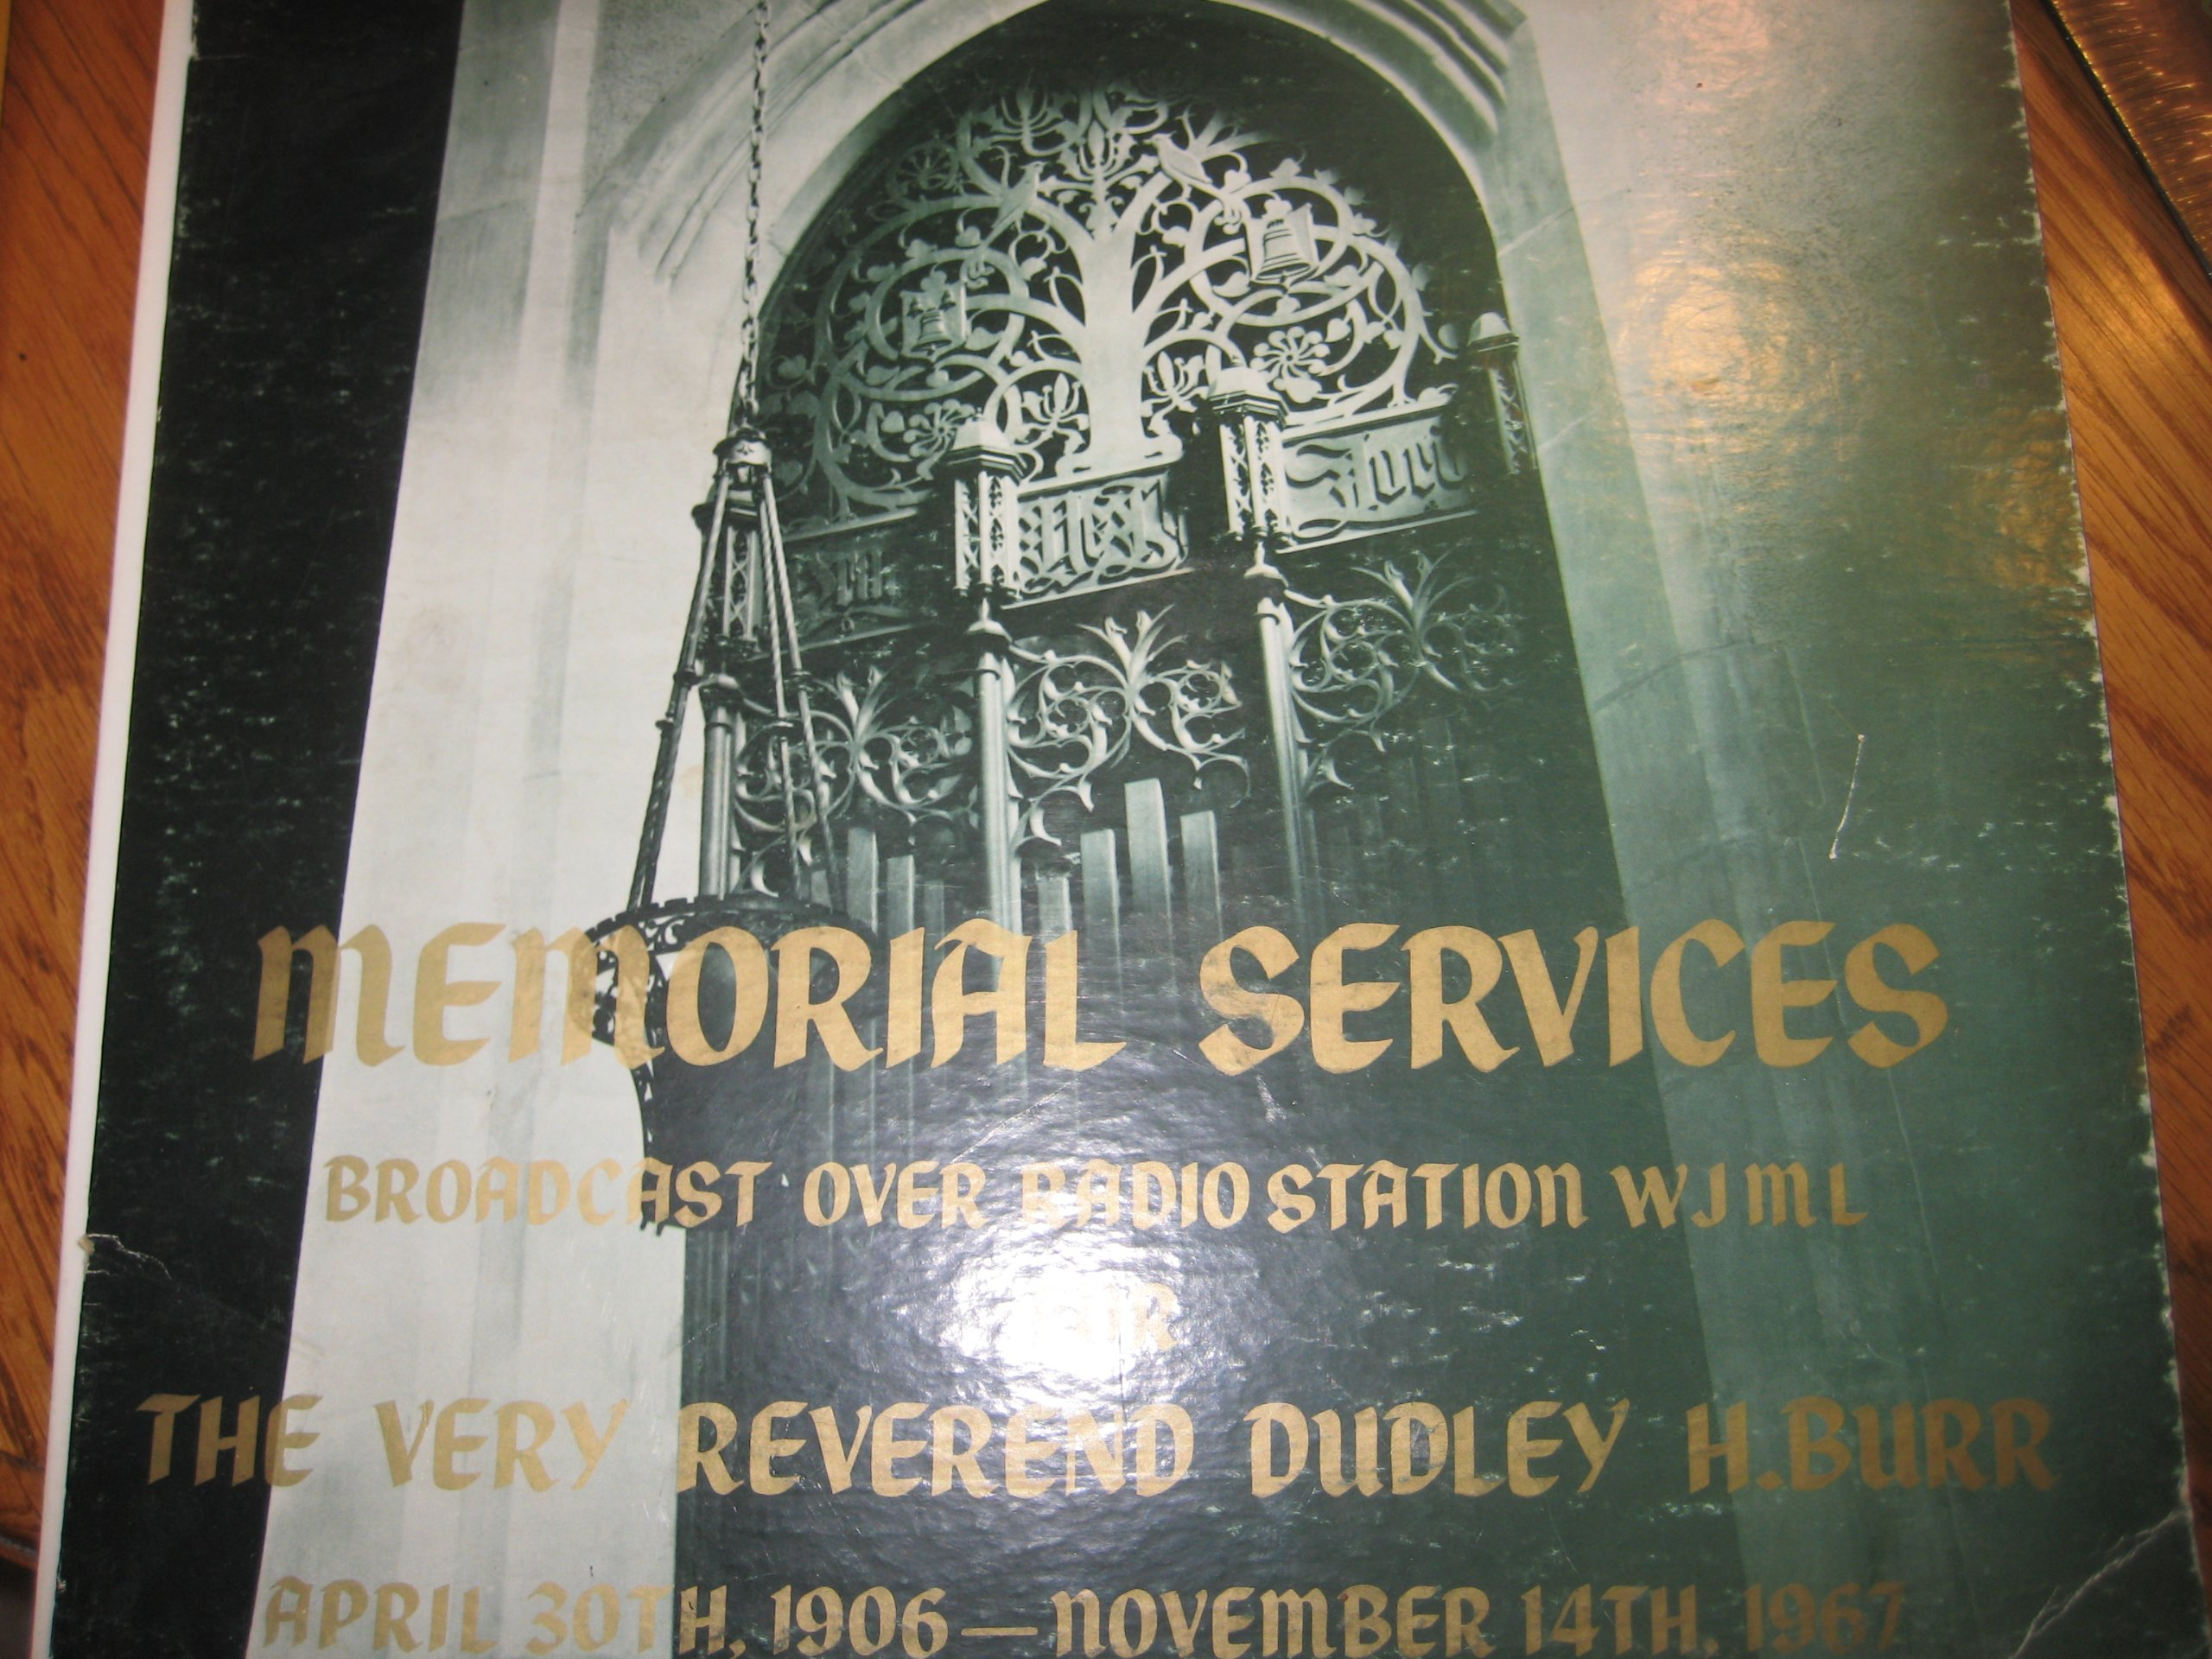 Memorial Services for Reverend Dudley H. Burr 1967, Excerpts from WJML Radio Programs 1967